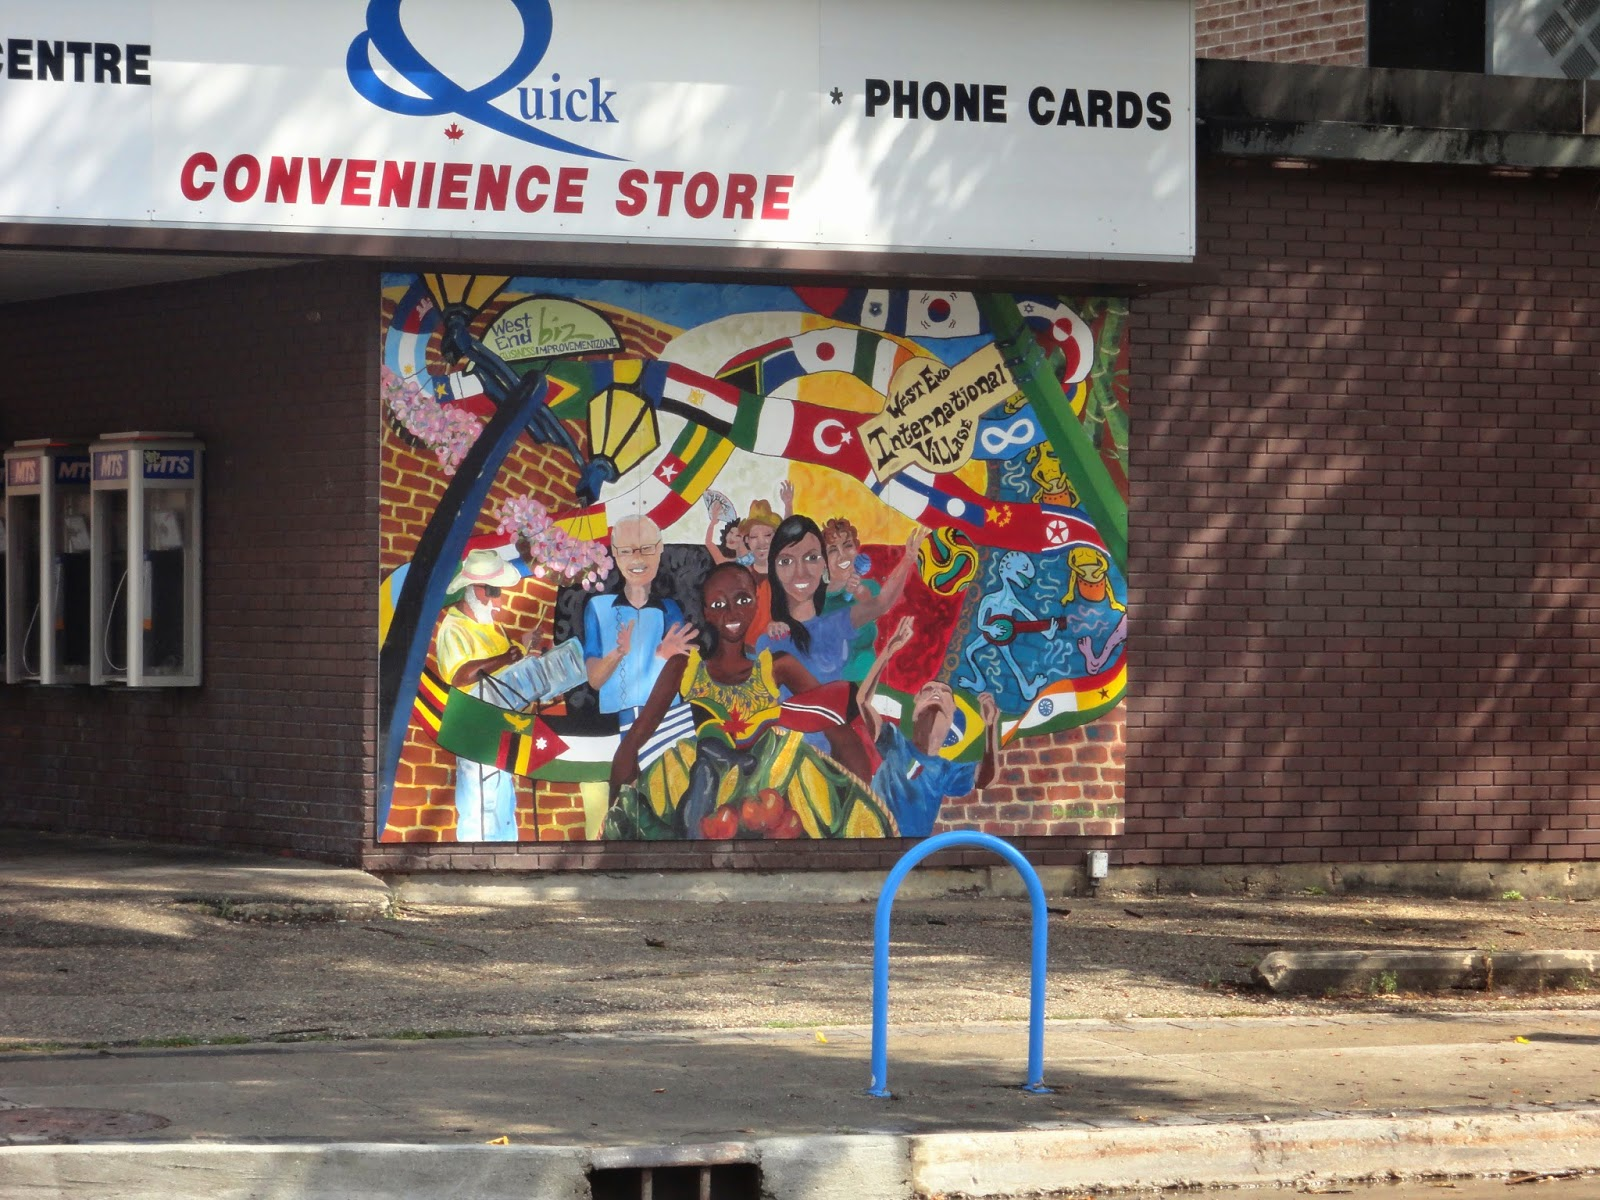 """West End International Village"" by Roberta Hansen (2009) - 7 x 16 Convenience Store, 495 Sargent Avenue"